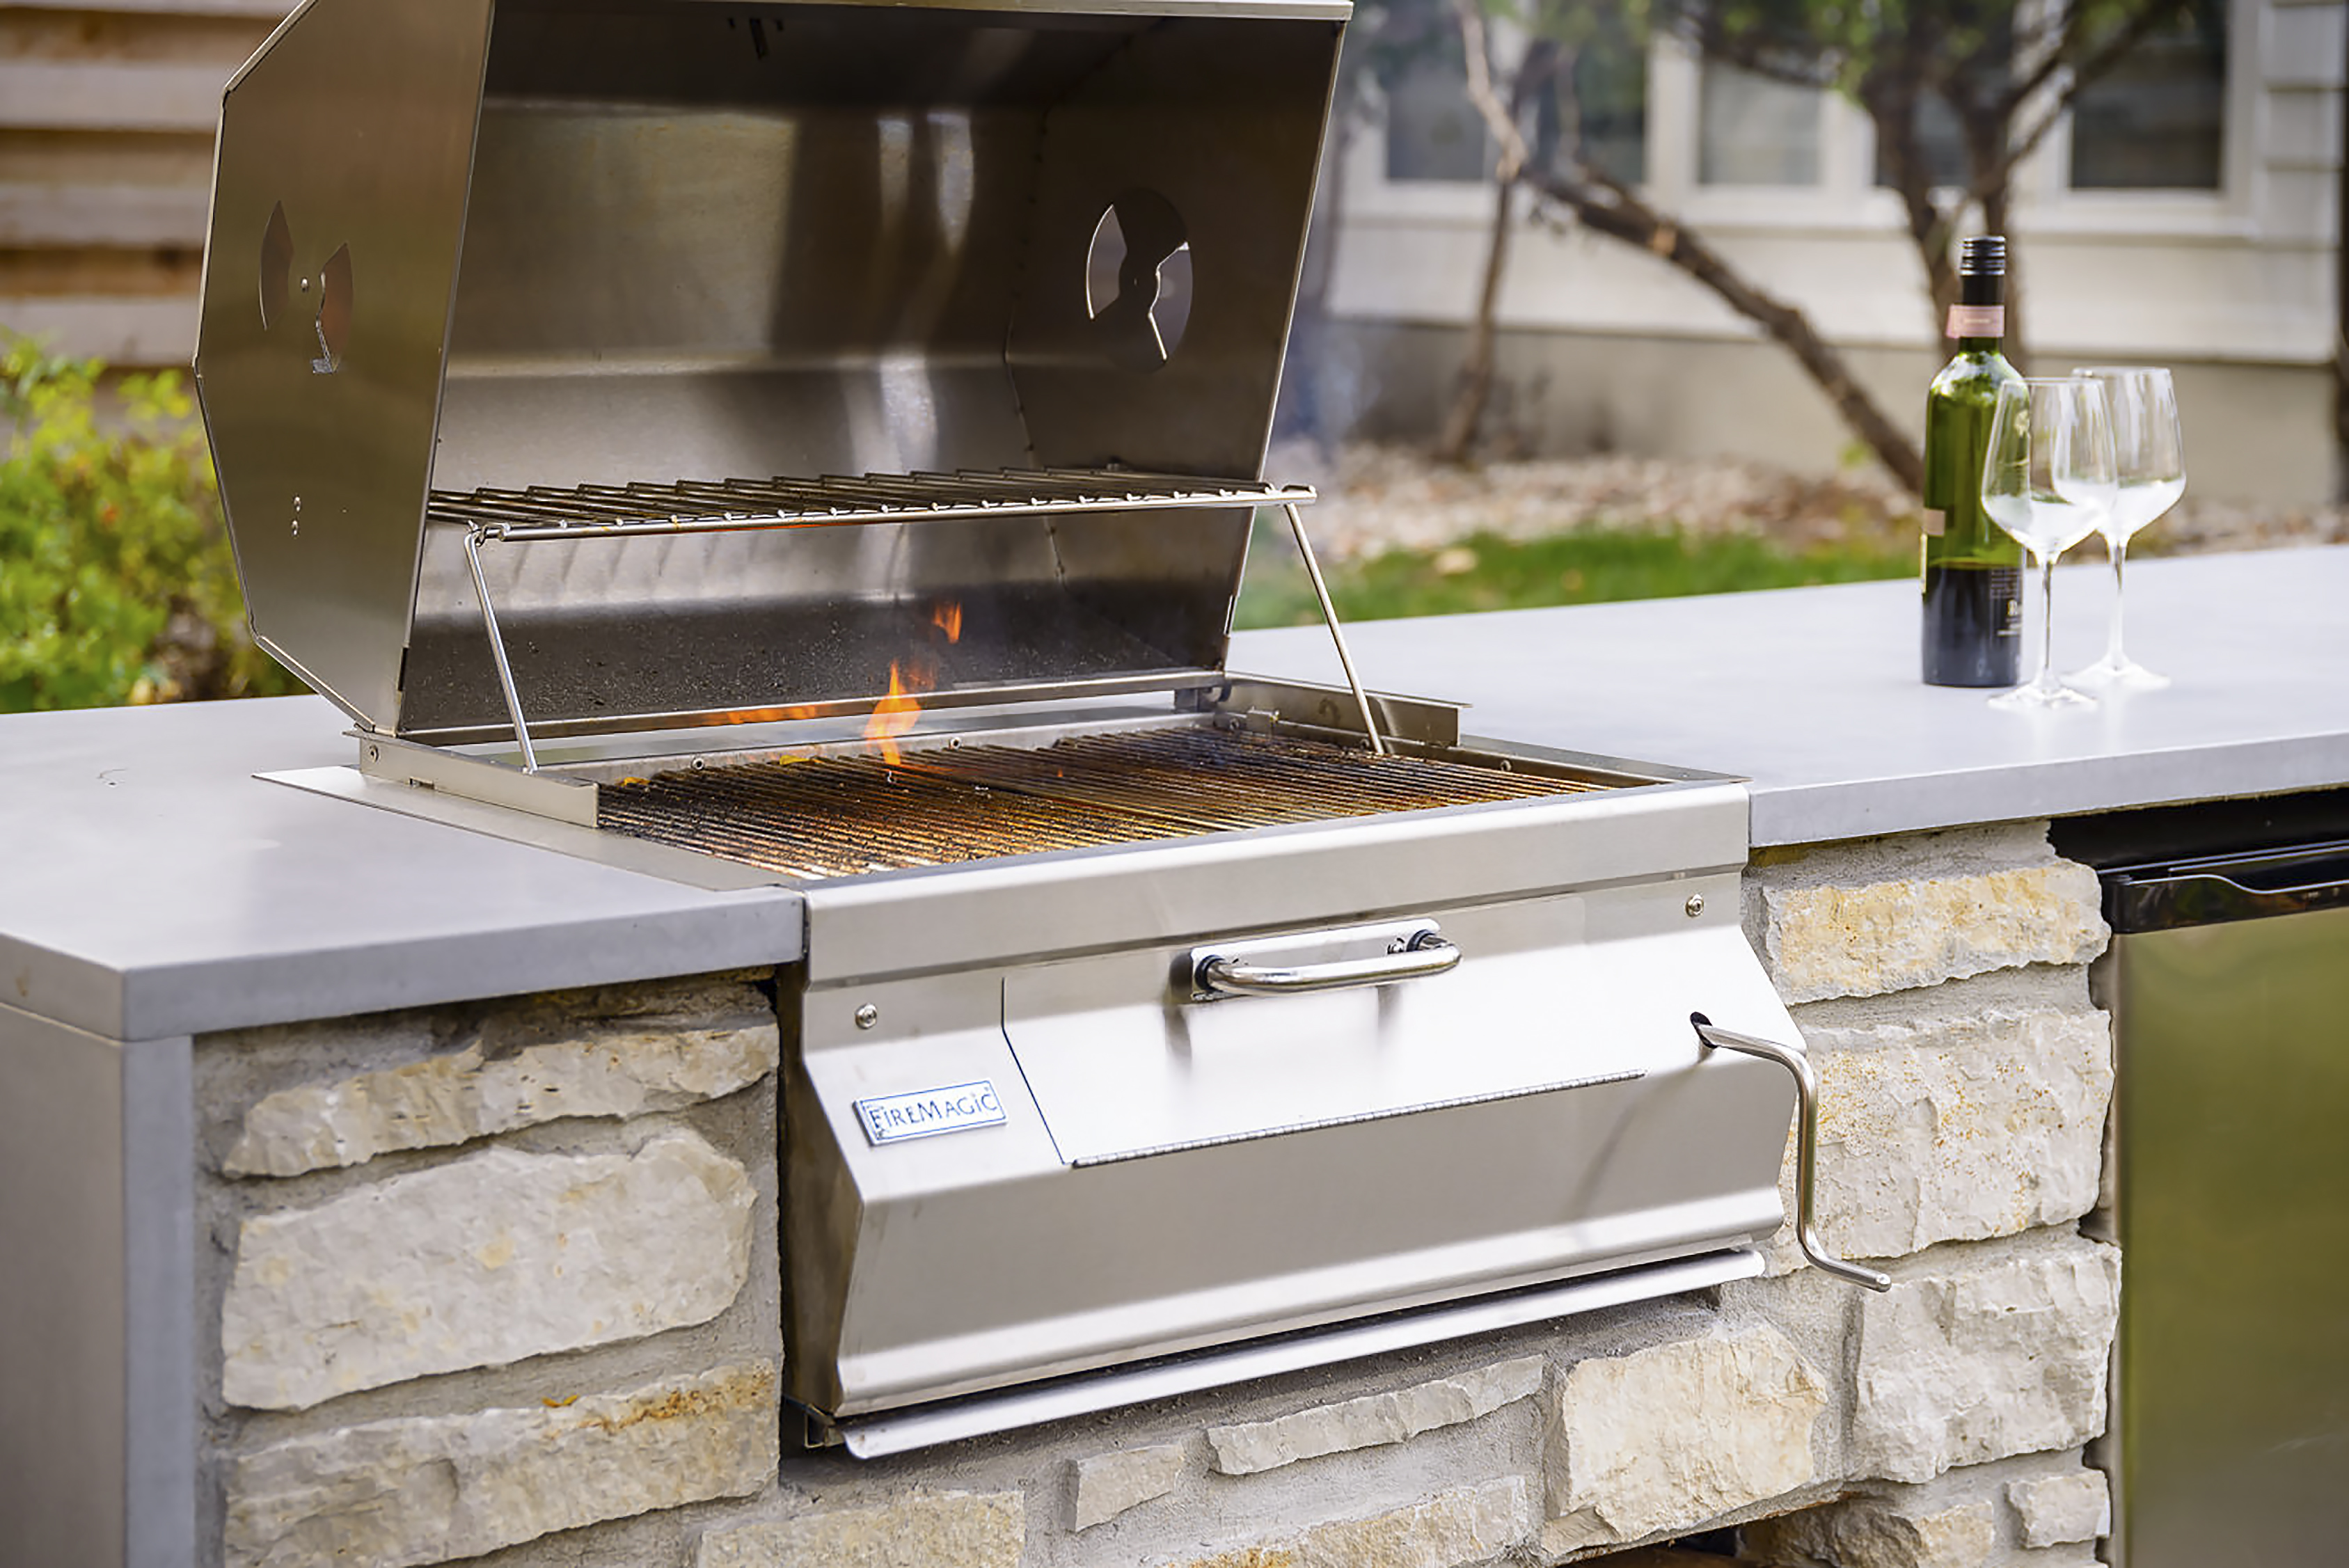 FM_12-SC01C-A_Charcoal Grill Lifestyle 1